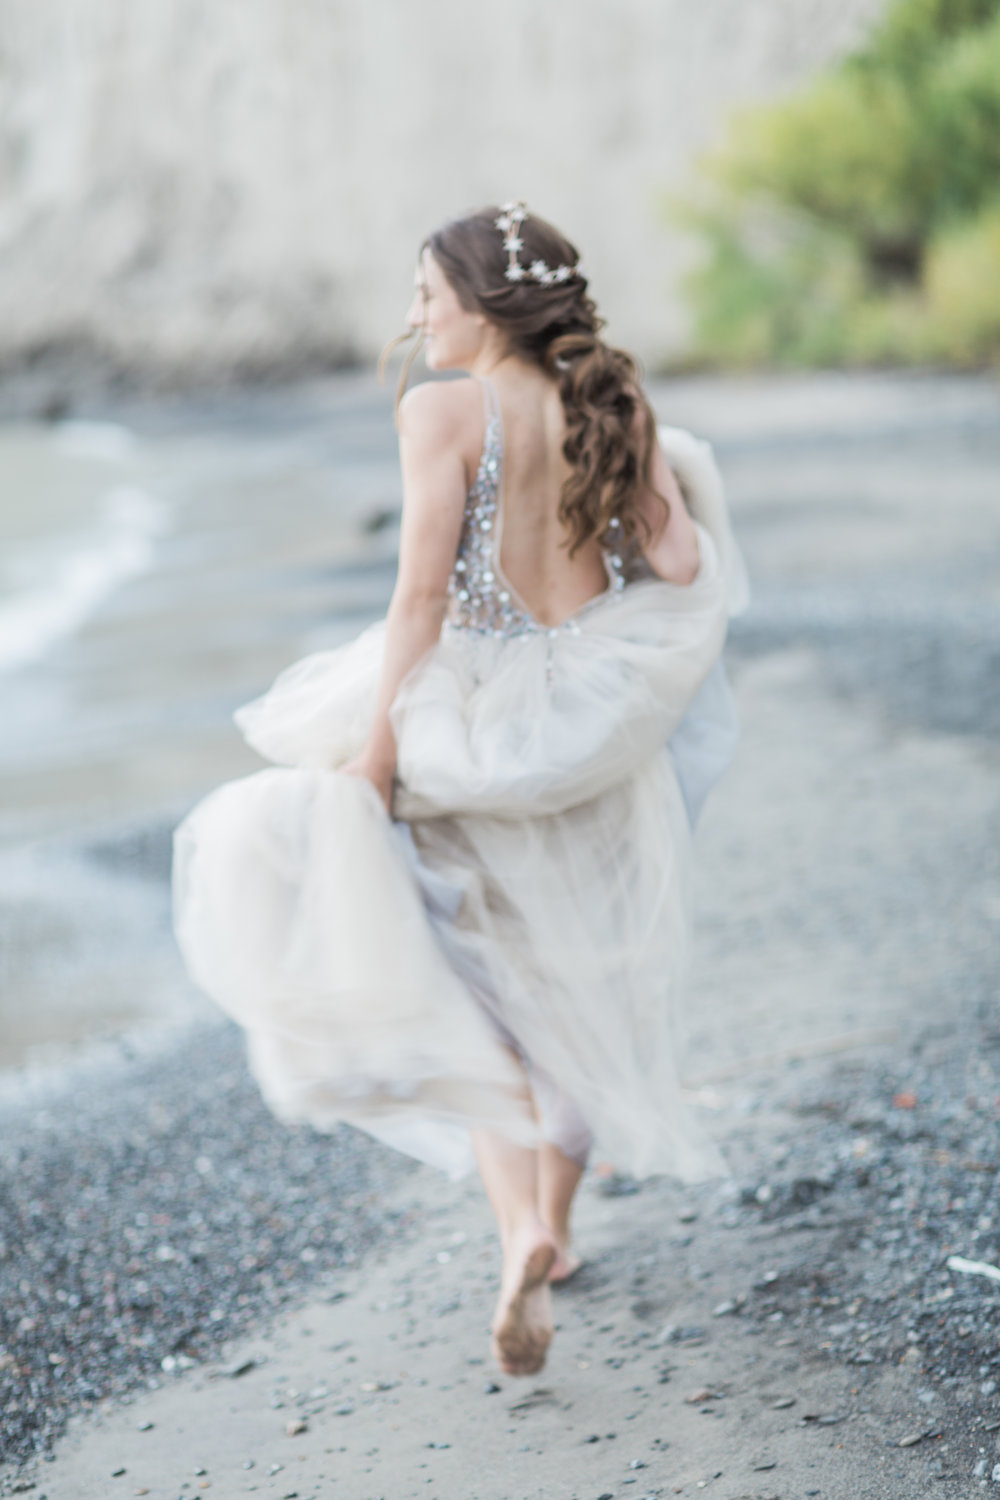 dae1f77d2e21-bridal_beach_photos_291.jpg